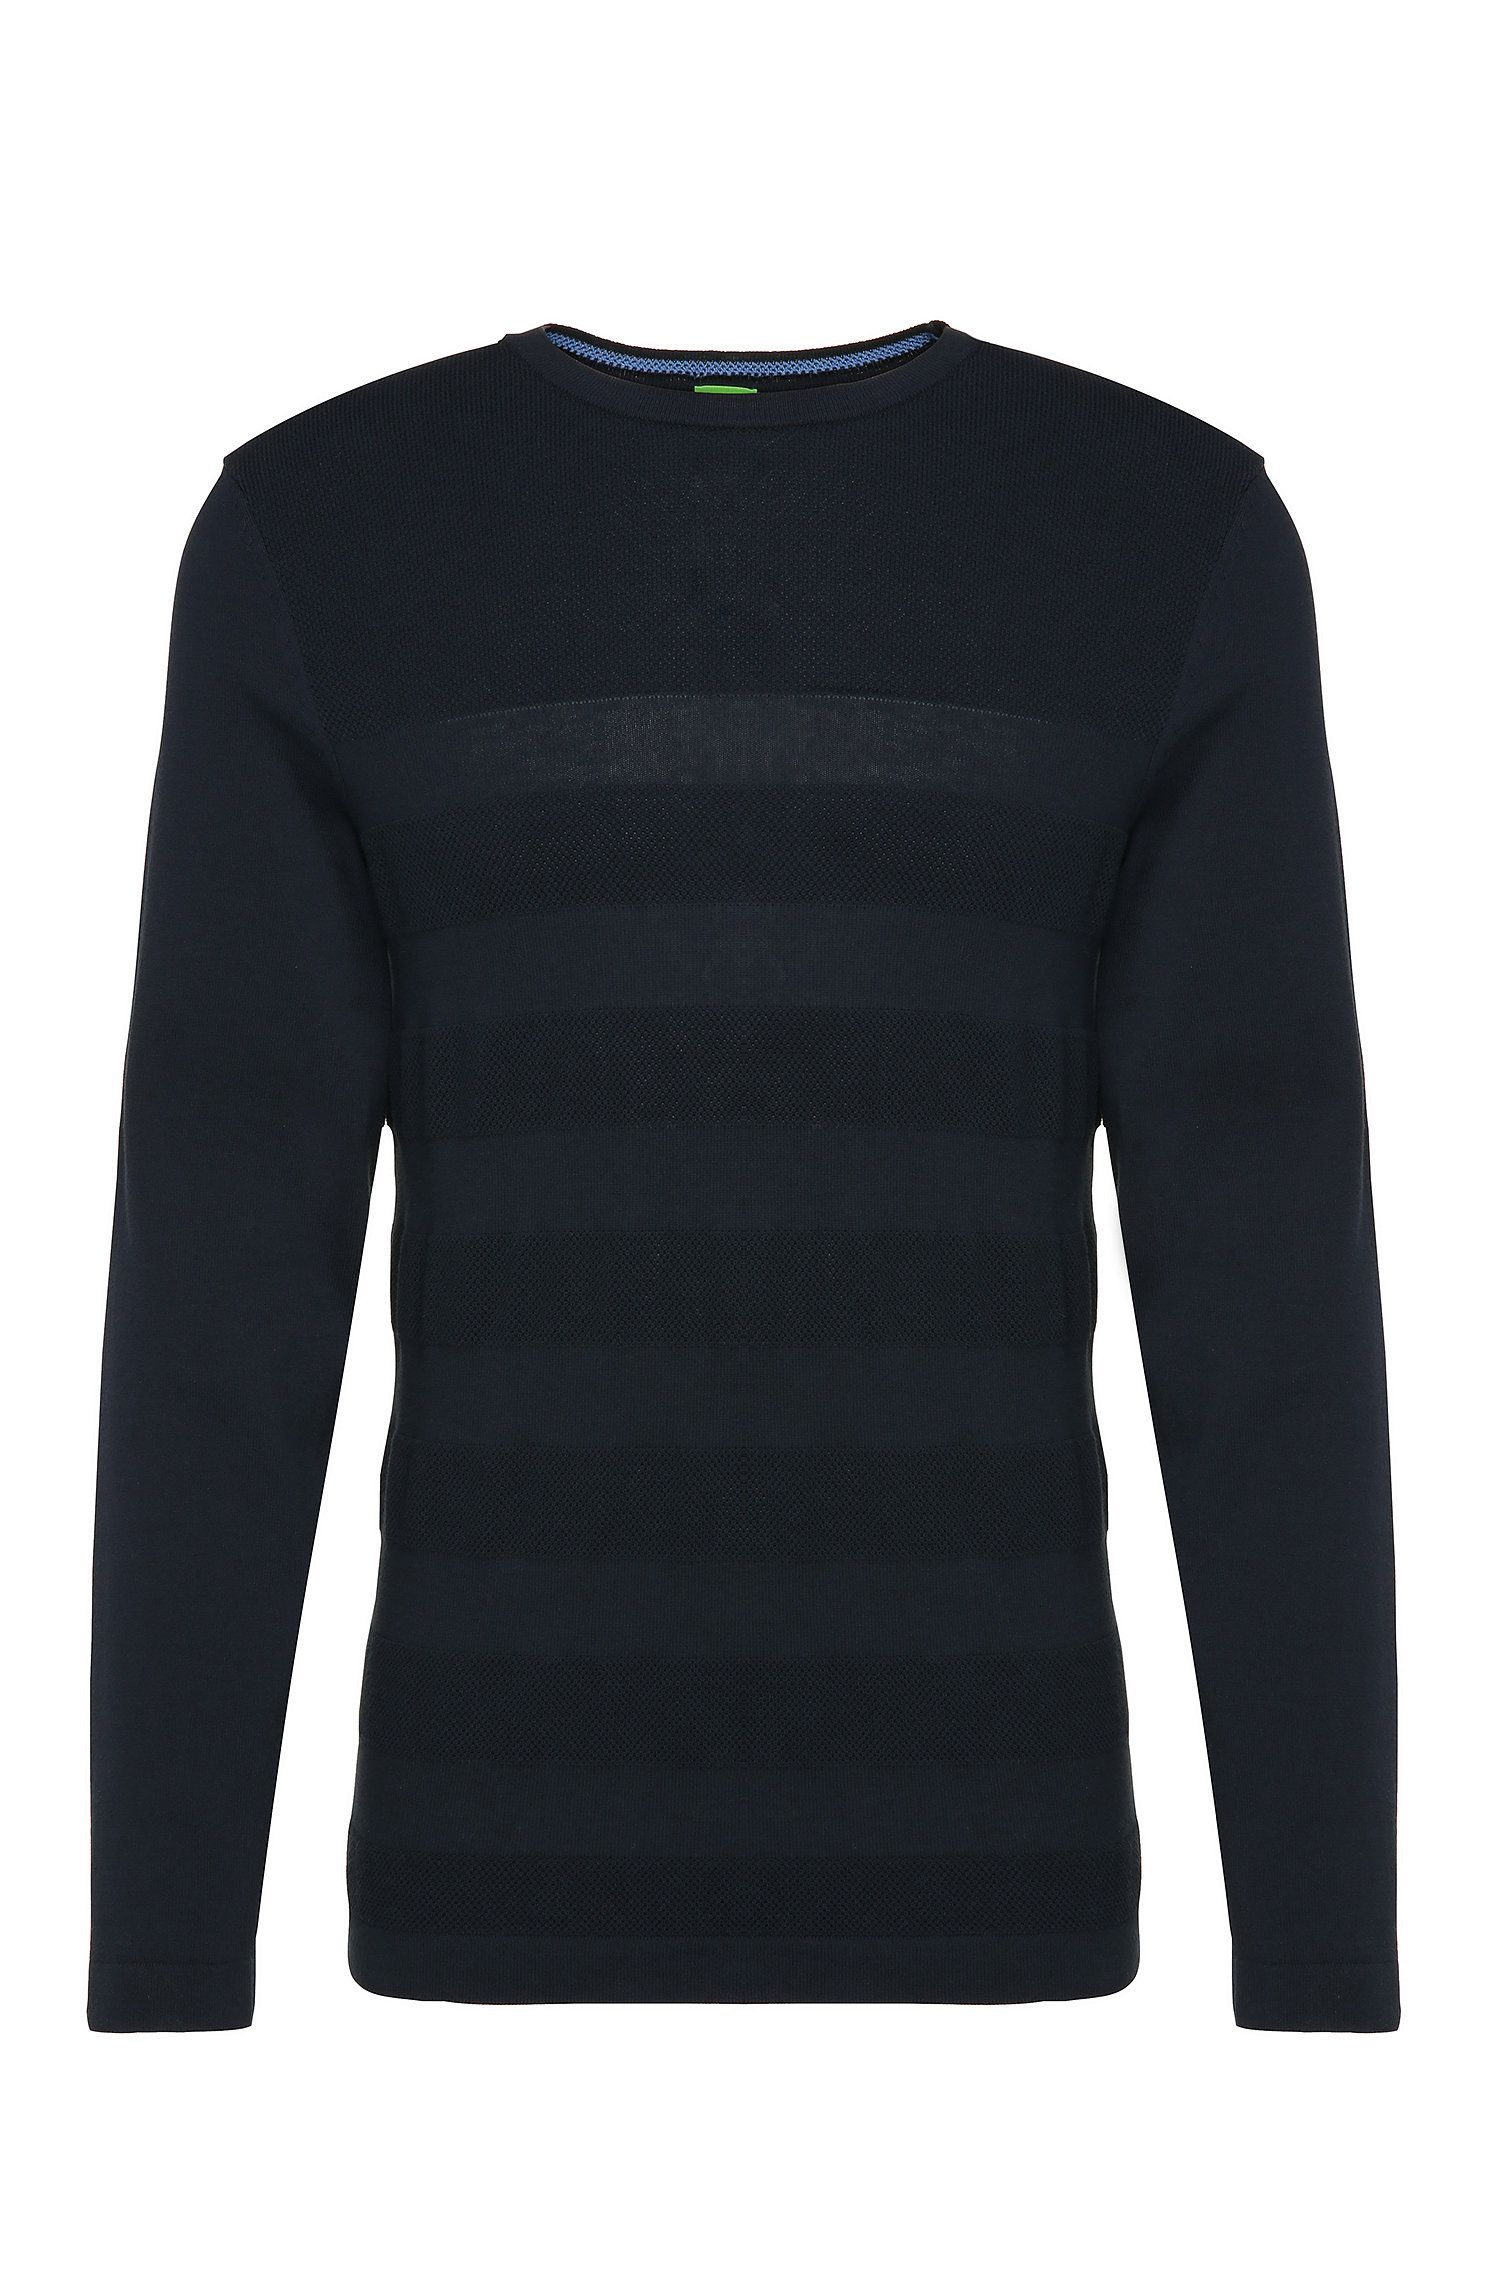 Striped slim-fit knitted sweater in cotton: 'Rupe'